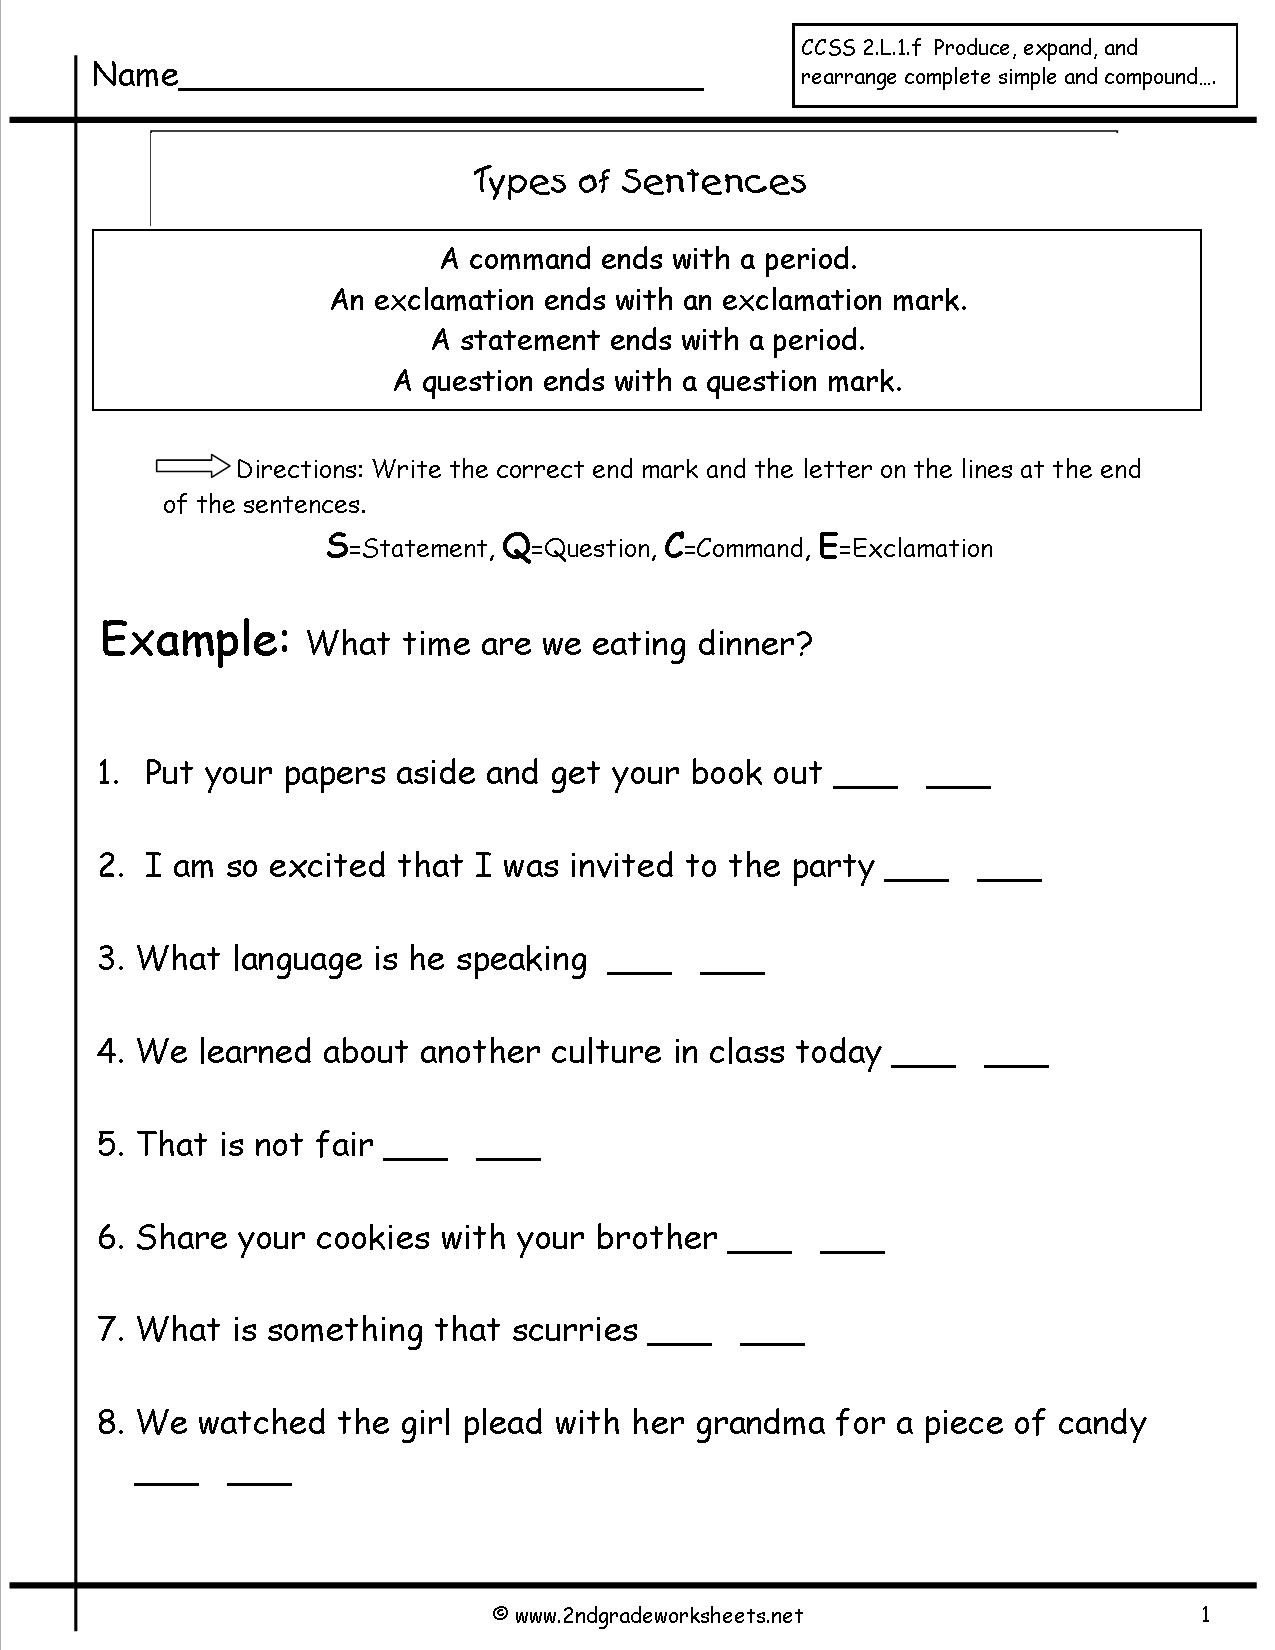 plex sentence worksheets 5th grade